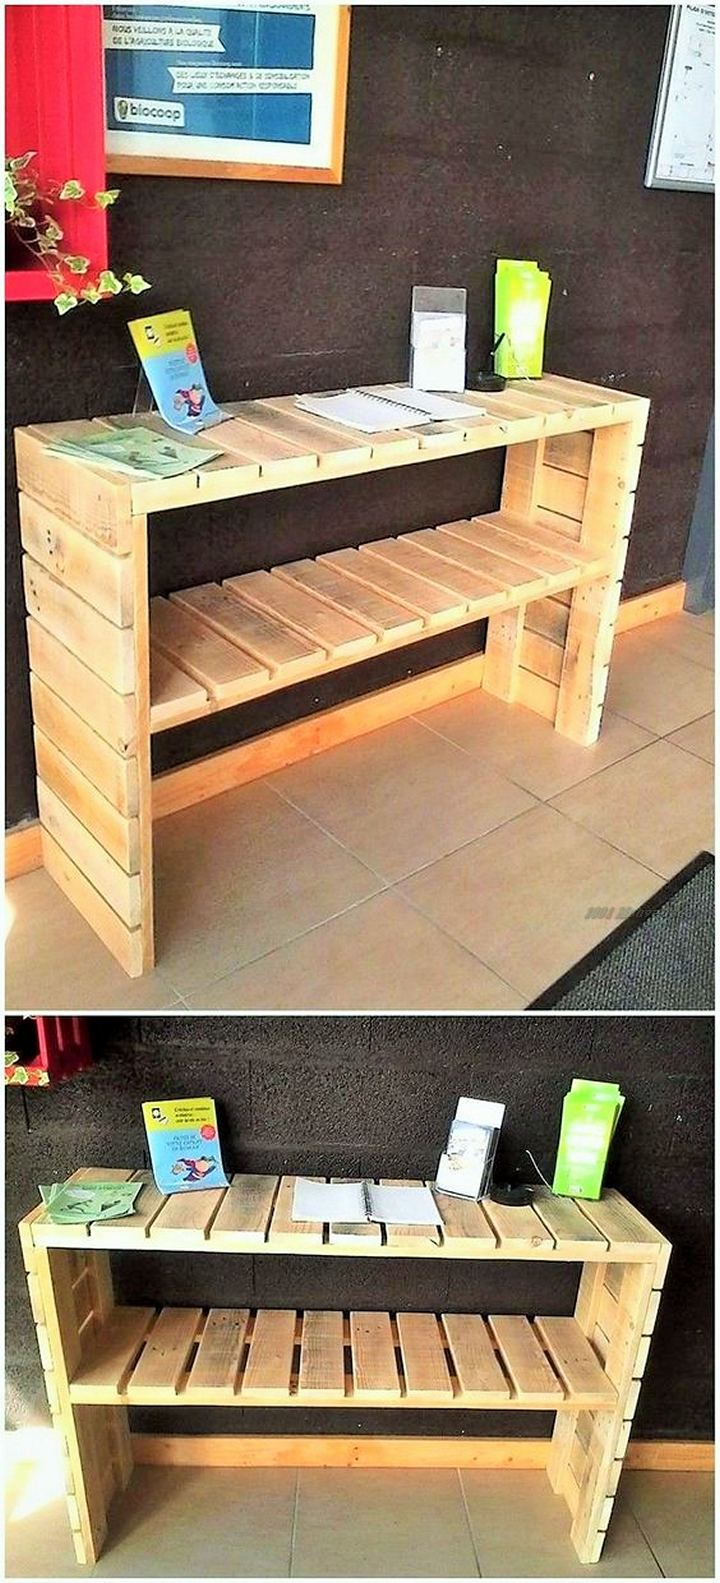 Wooden Pallets for Domestic and International Use- (9)